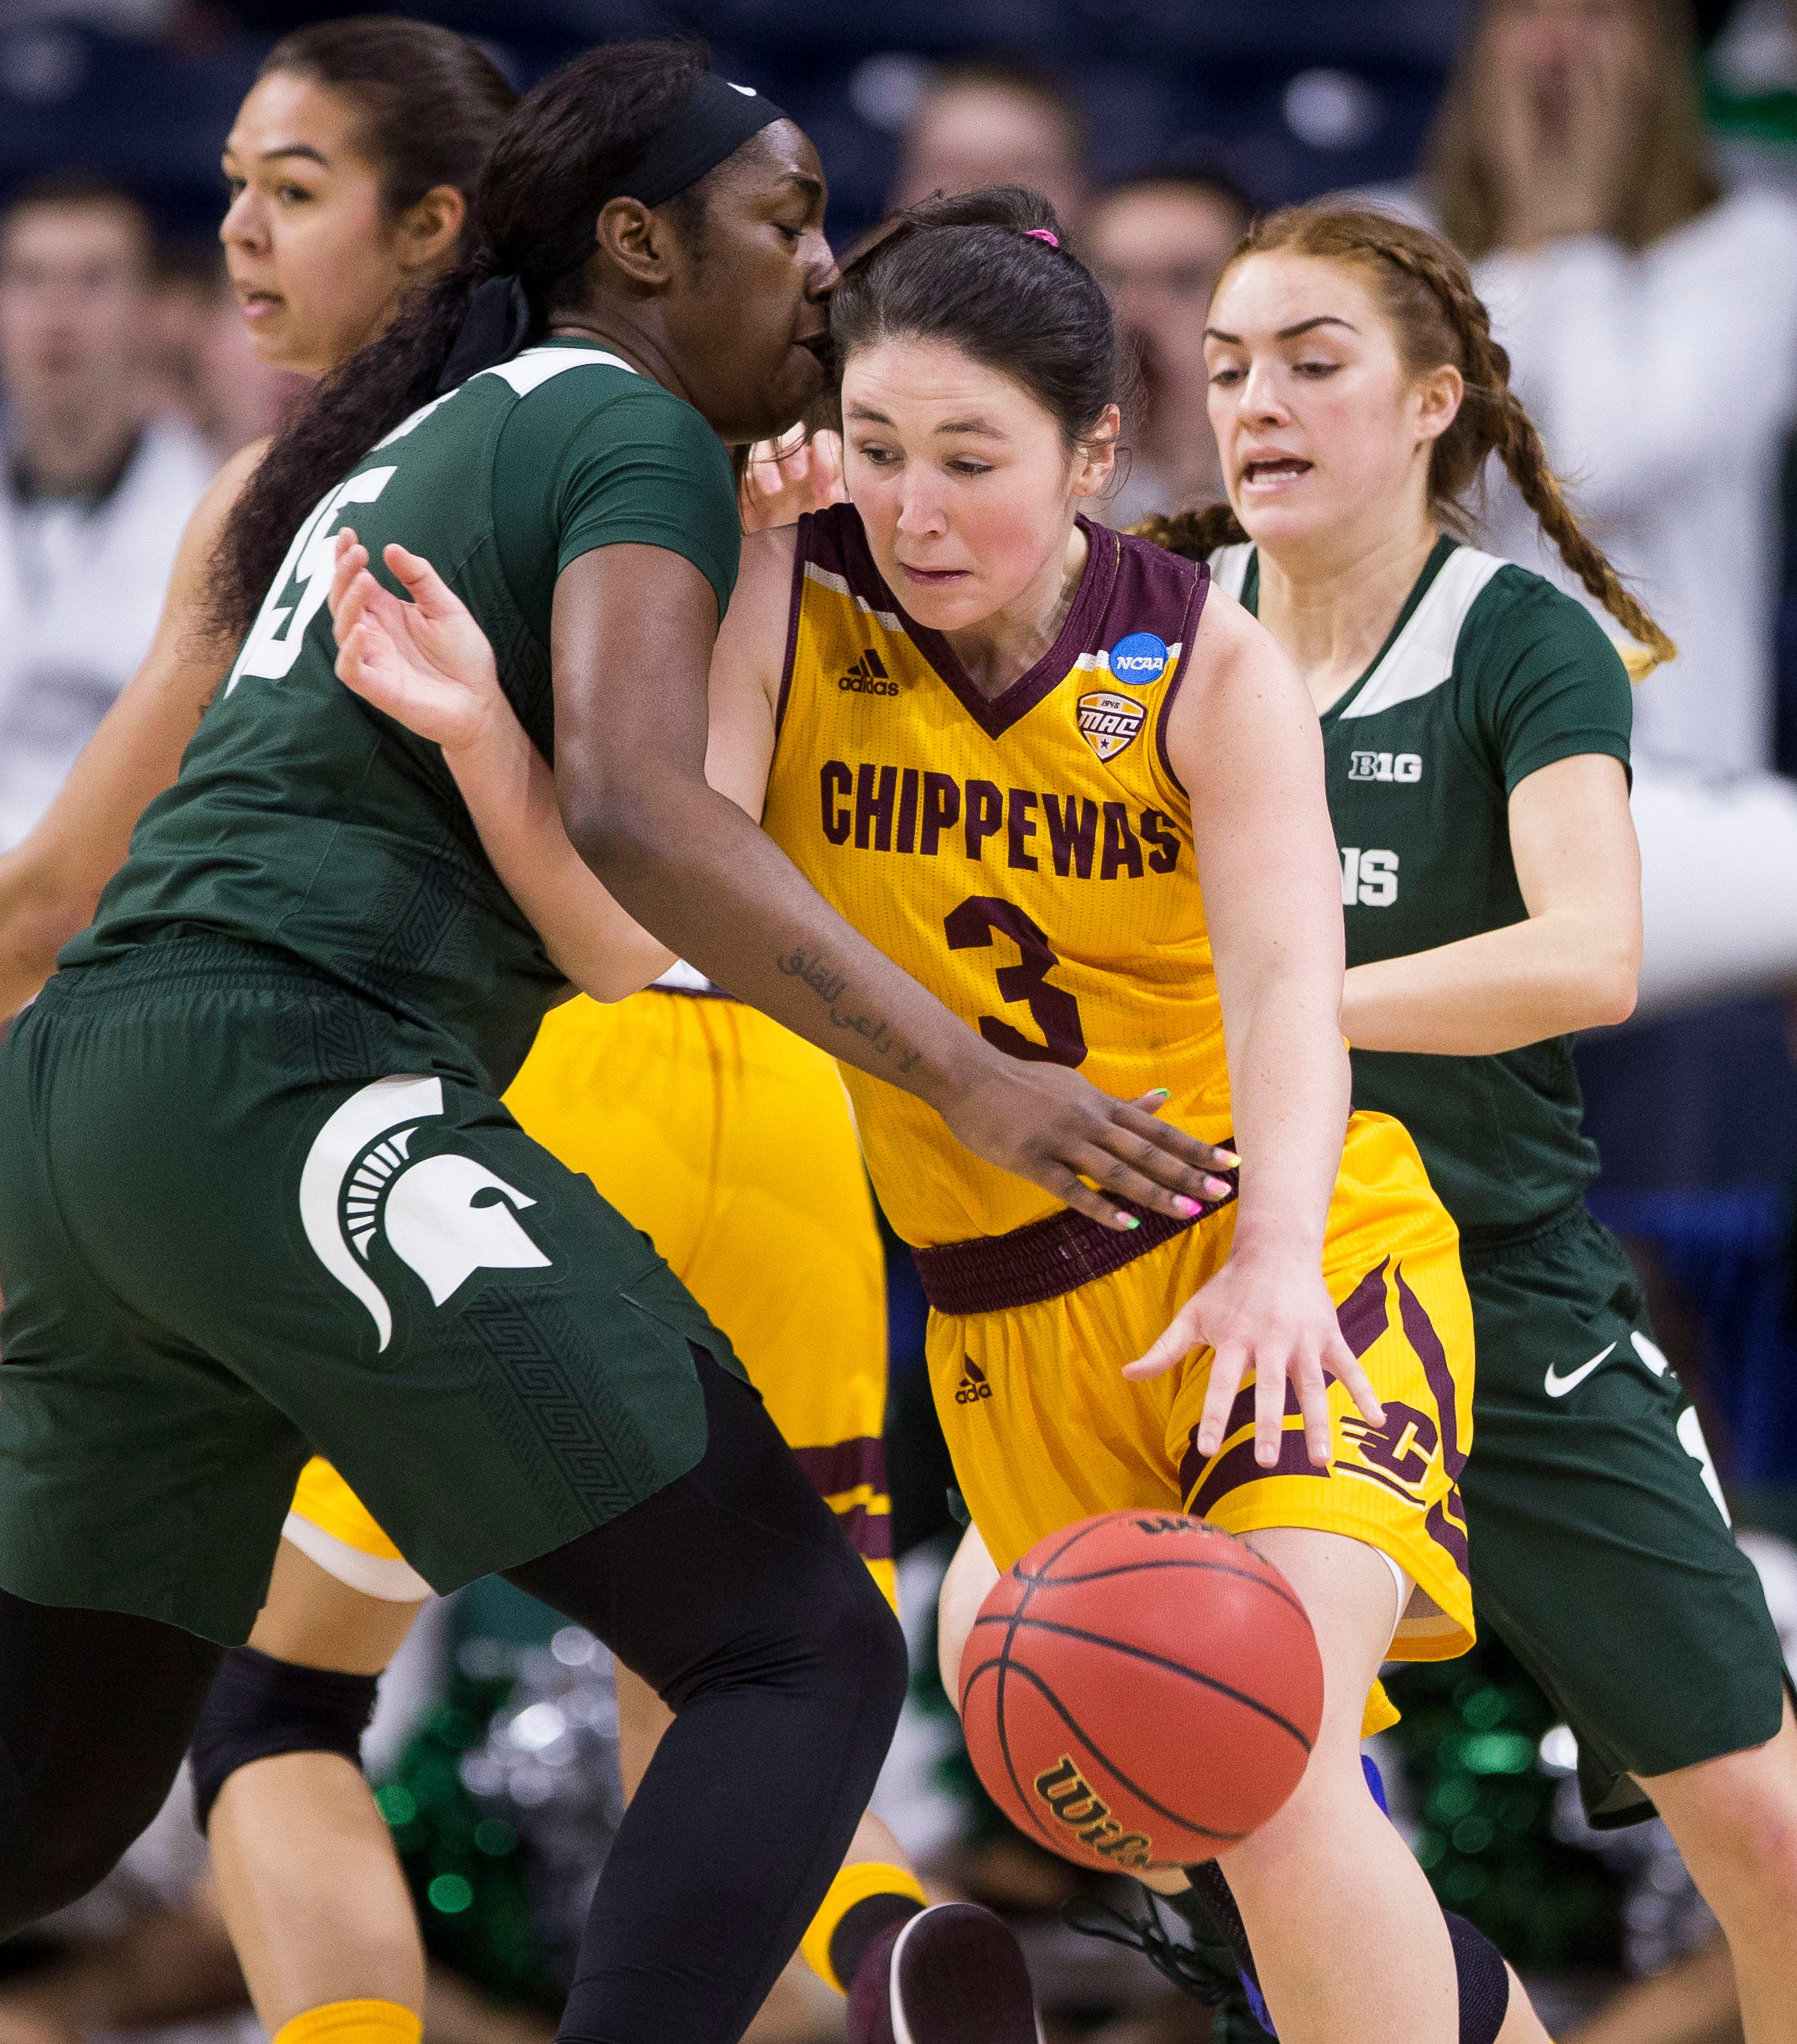 State hoops notes: Sharp-shooting Presley Hudson takes 3-point skills to the Final Four